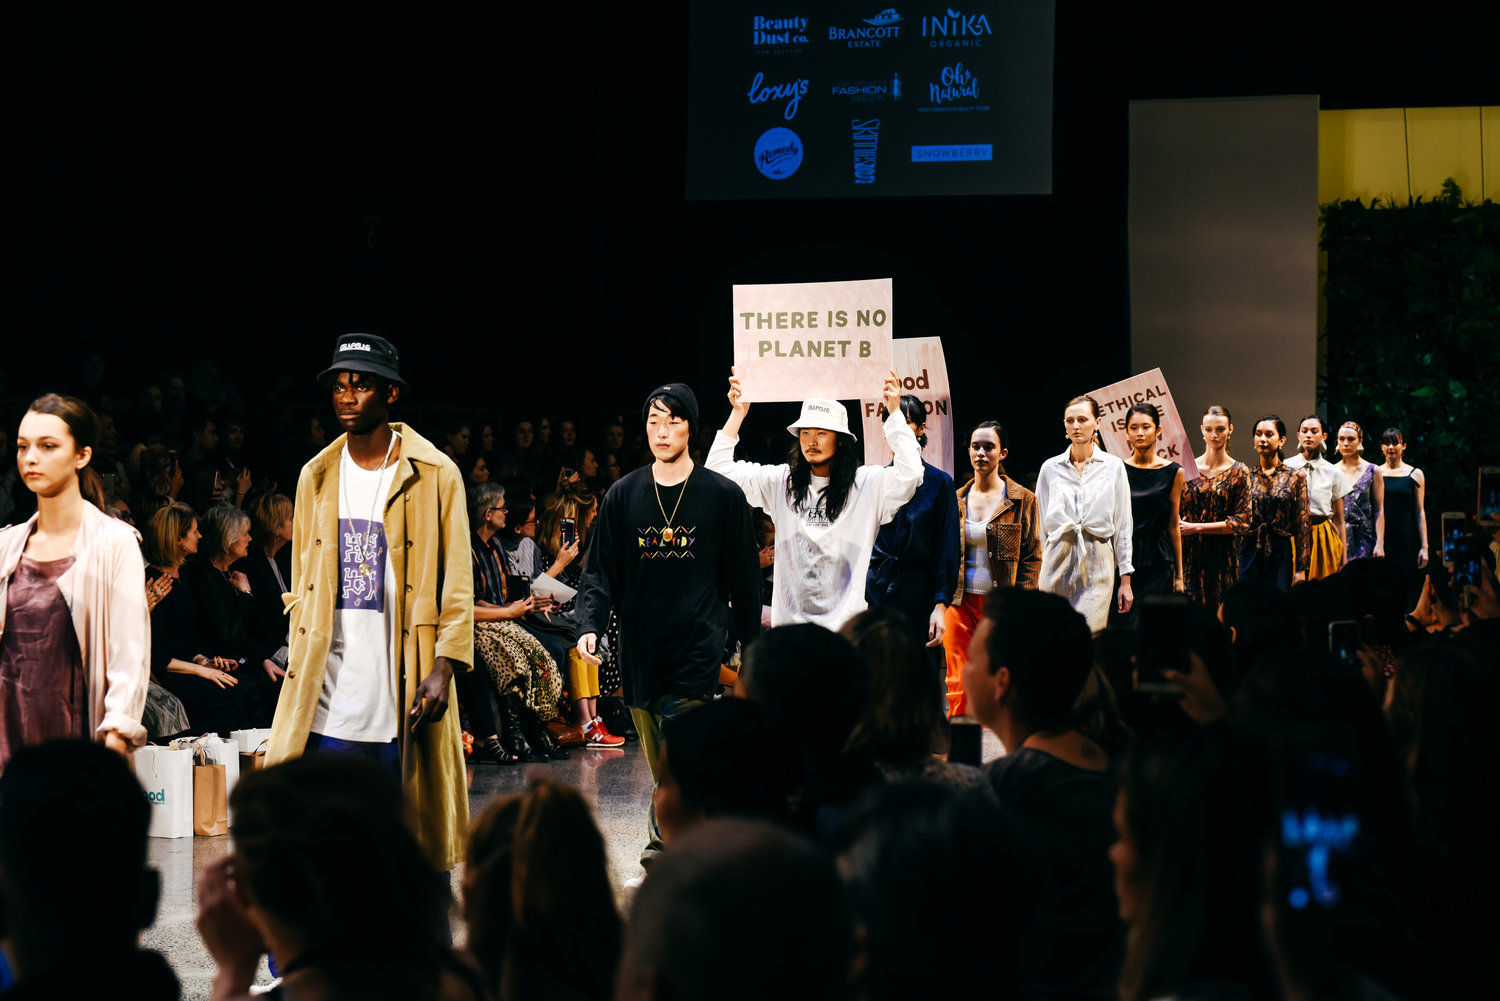 Nzfw Announces A Fresh Focus On Sustainability For 2019 New Zealand Fashion Week